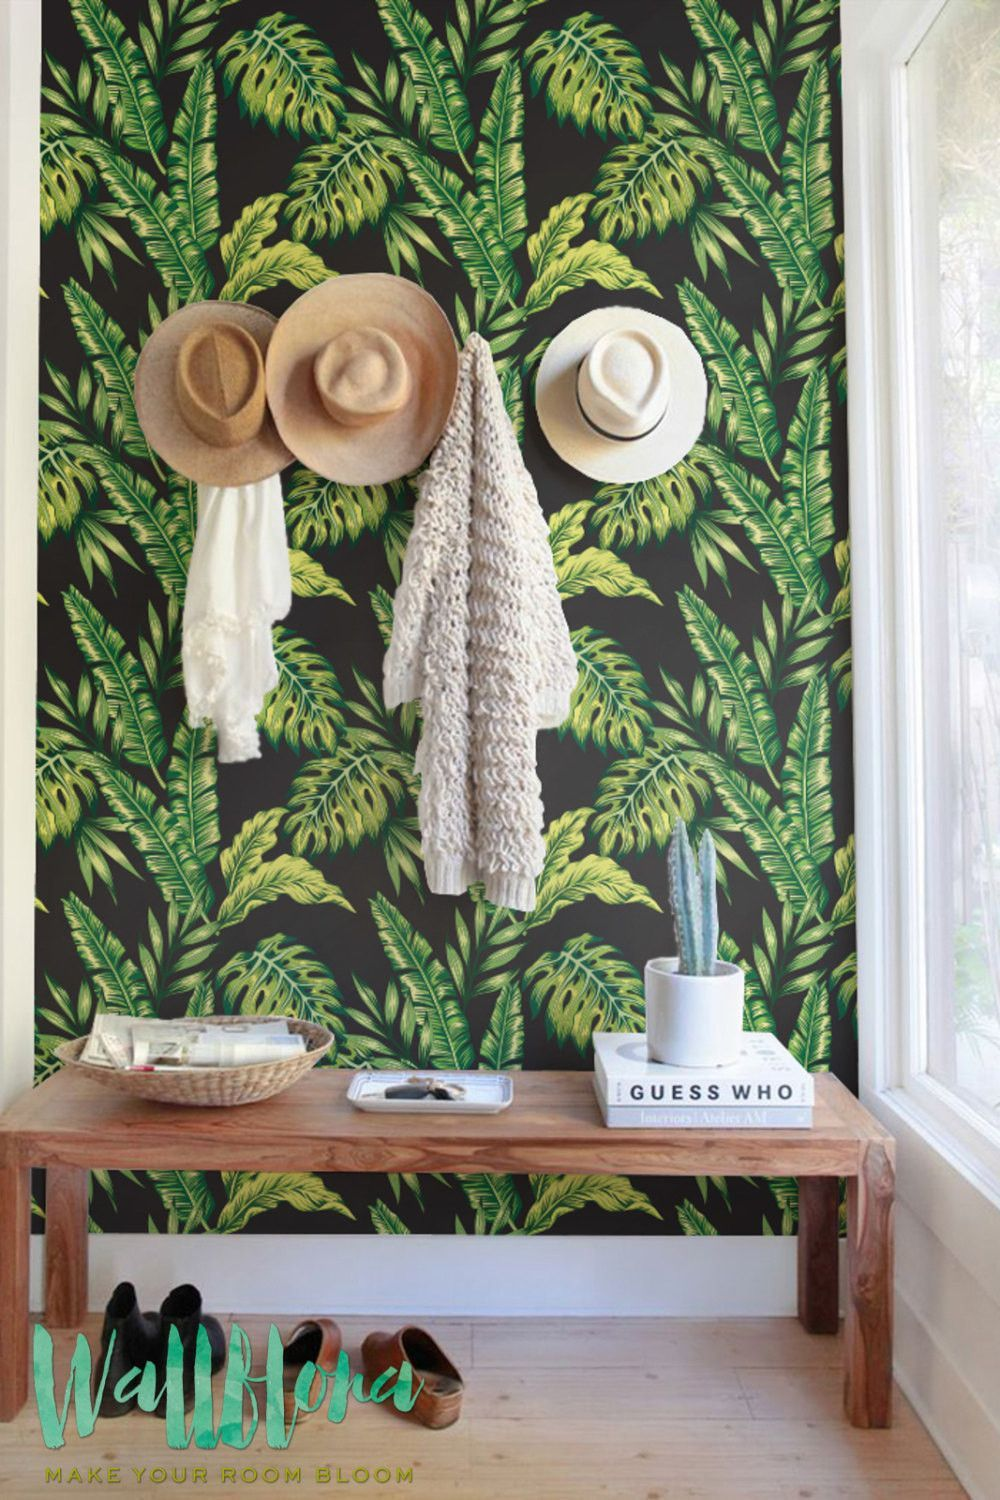 Monstera and cycca leaves wallpaper removable wallpaper self adhesive wallpaper temporary wallpaper wall sticker wall decal